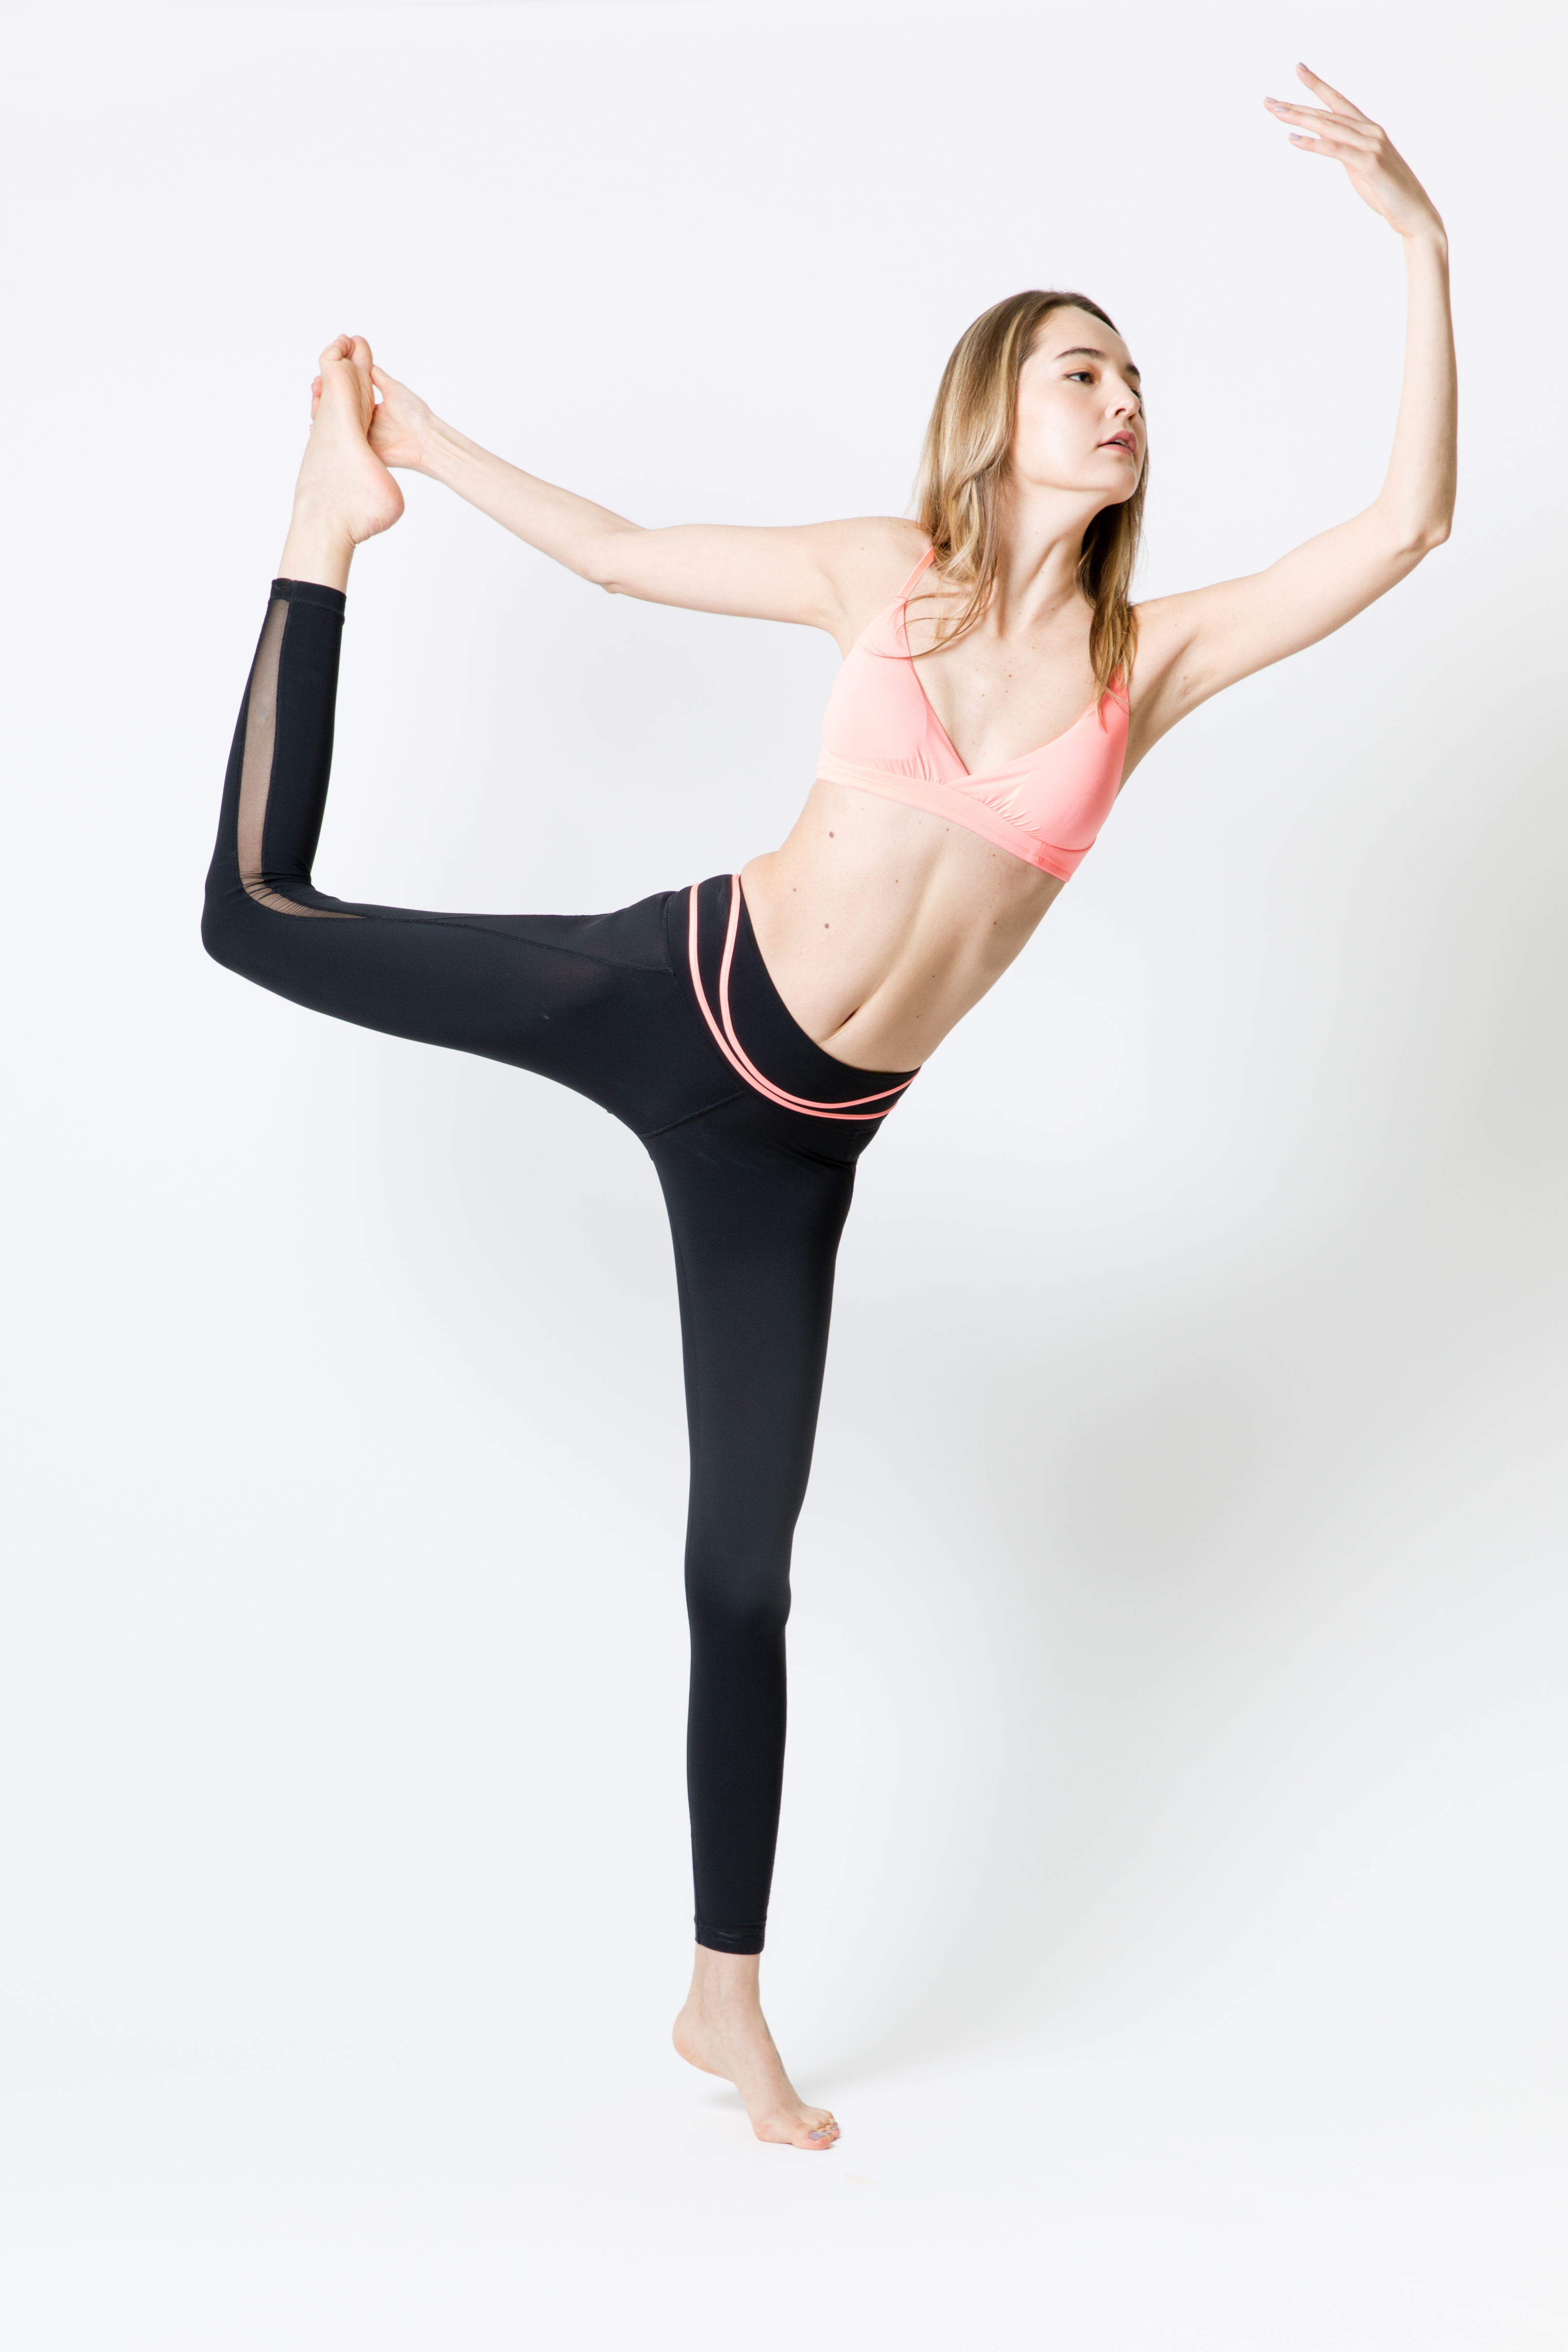 Where to buy activewear in Hong Kong